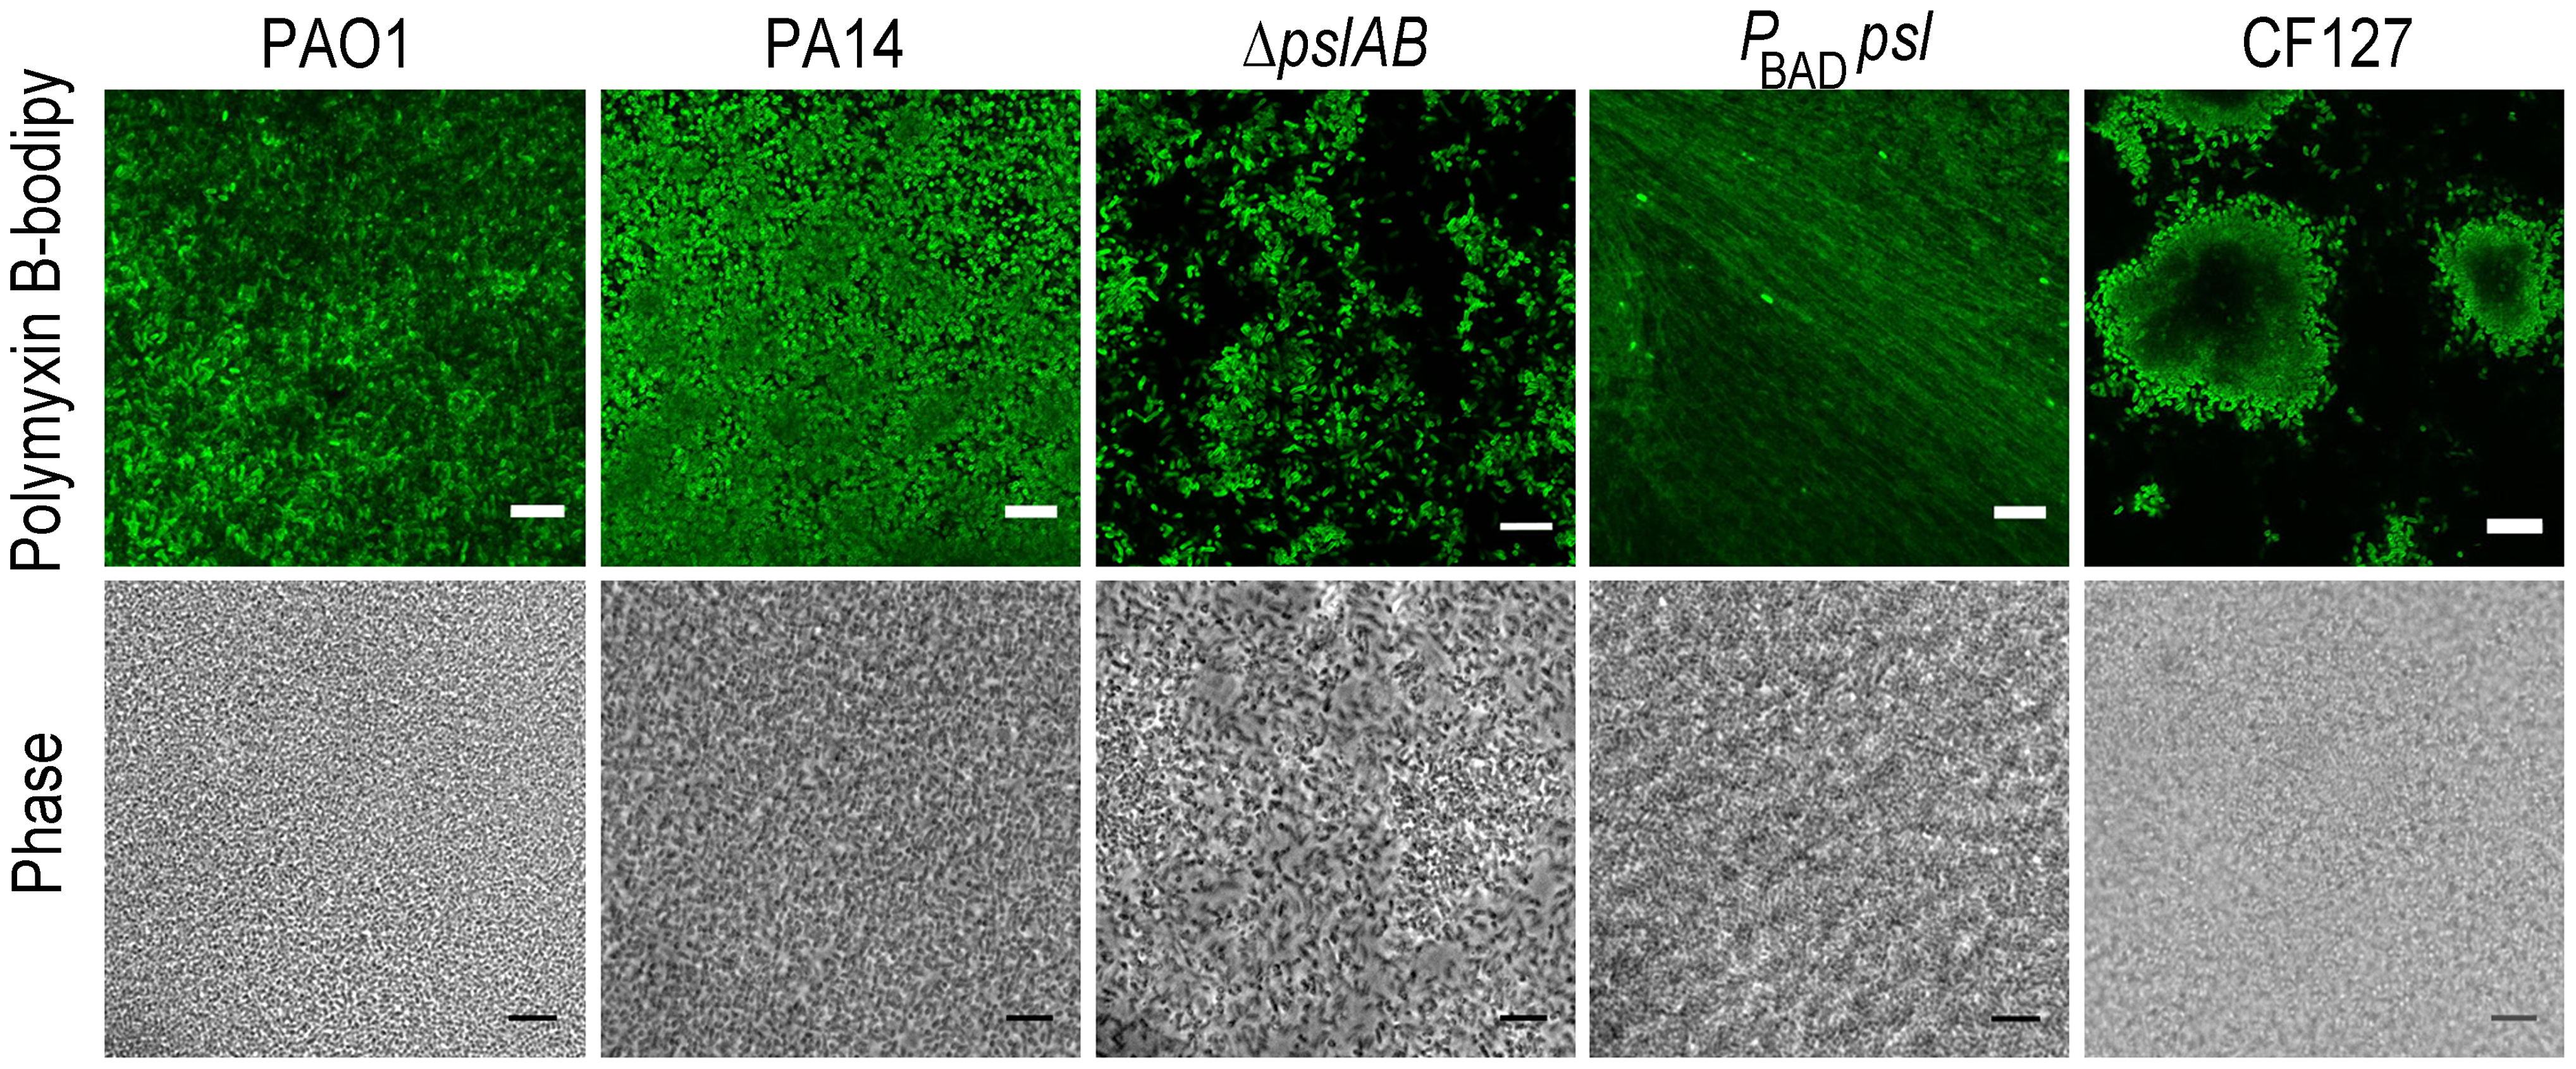 Polymyxin B interacts with the Psl extracellular matrix.